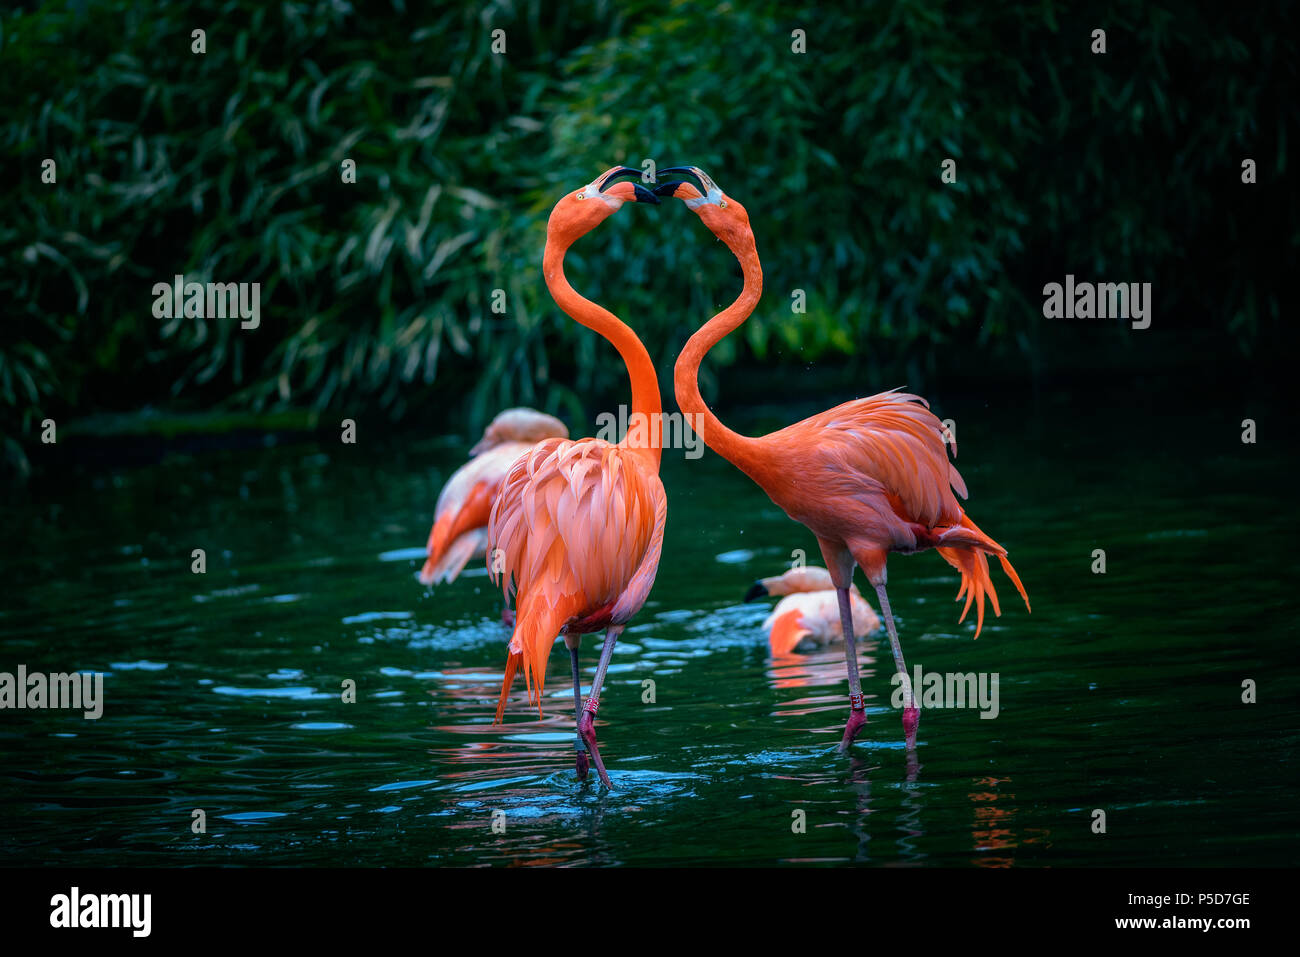 Two Caribbean Flamingos in fight - Stock Image